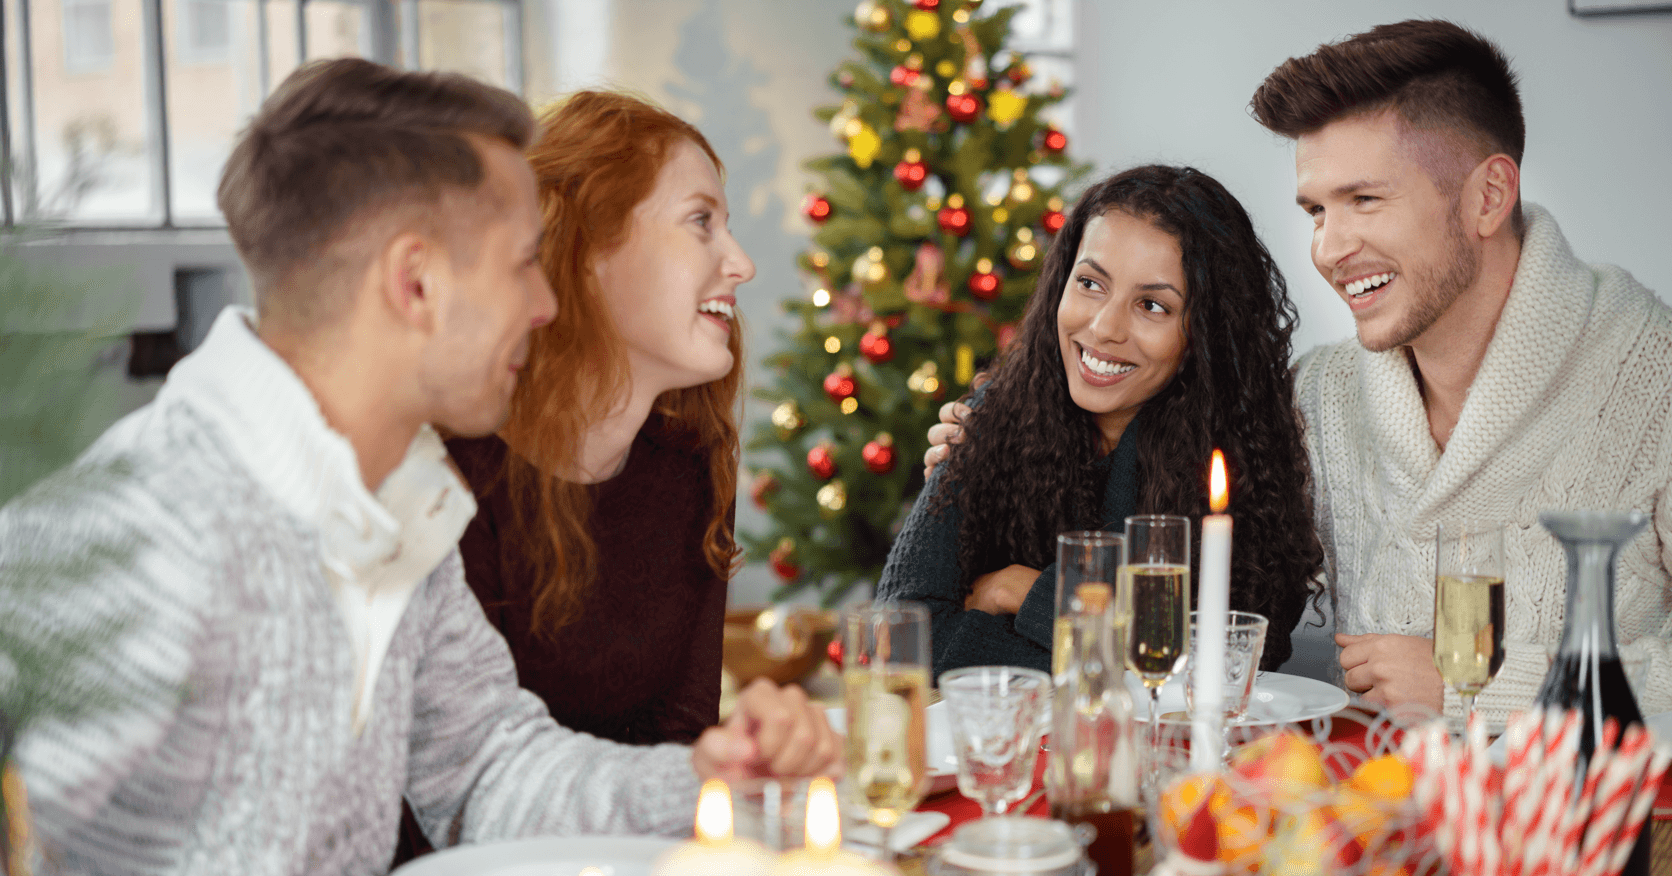 Make-Ahead Christmas Dinner: 7 Things to Prepare in Advance